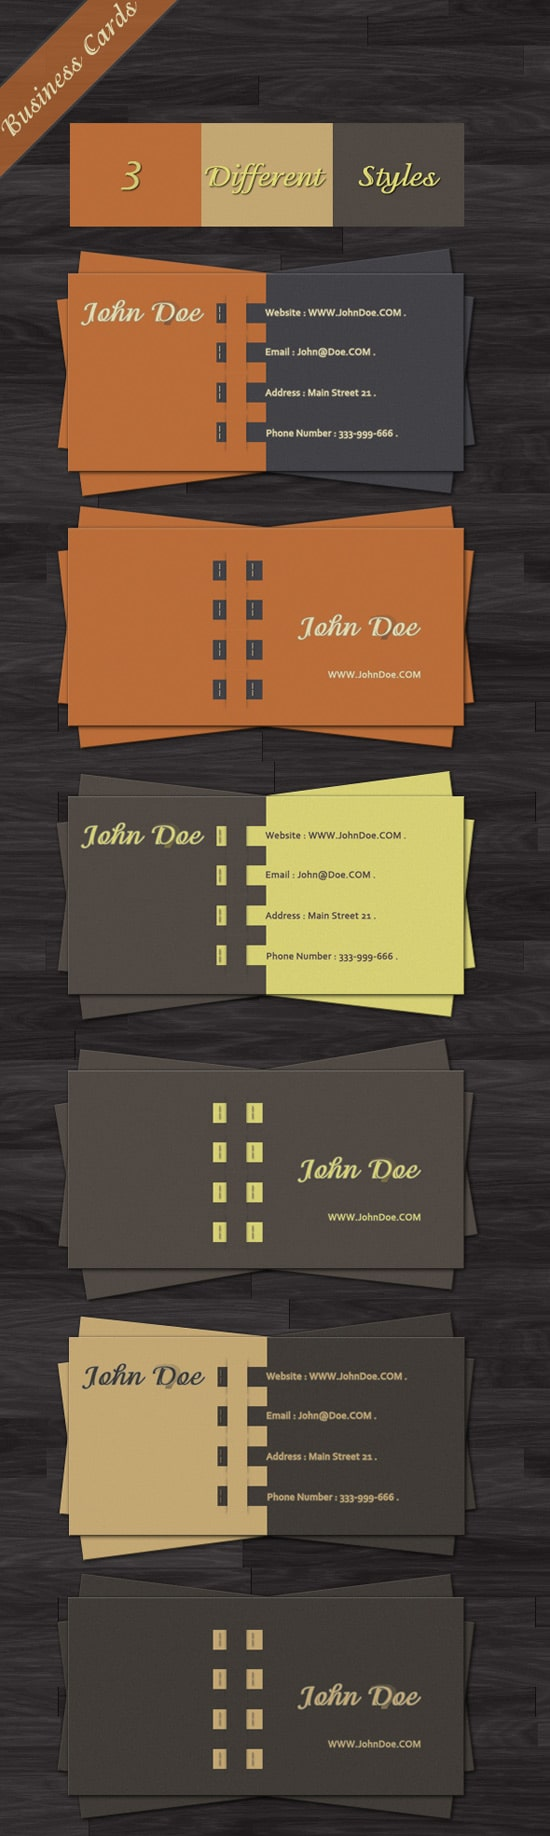 100 free business card templates designrfix business is business free psd vector business card wajeb Gallery